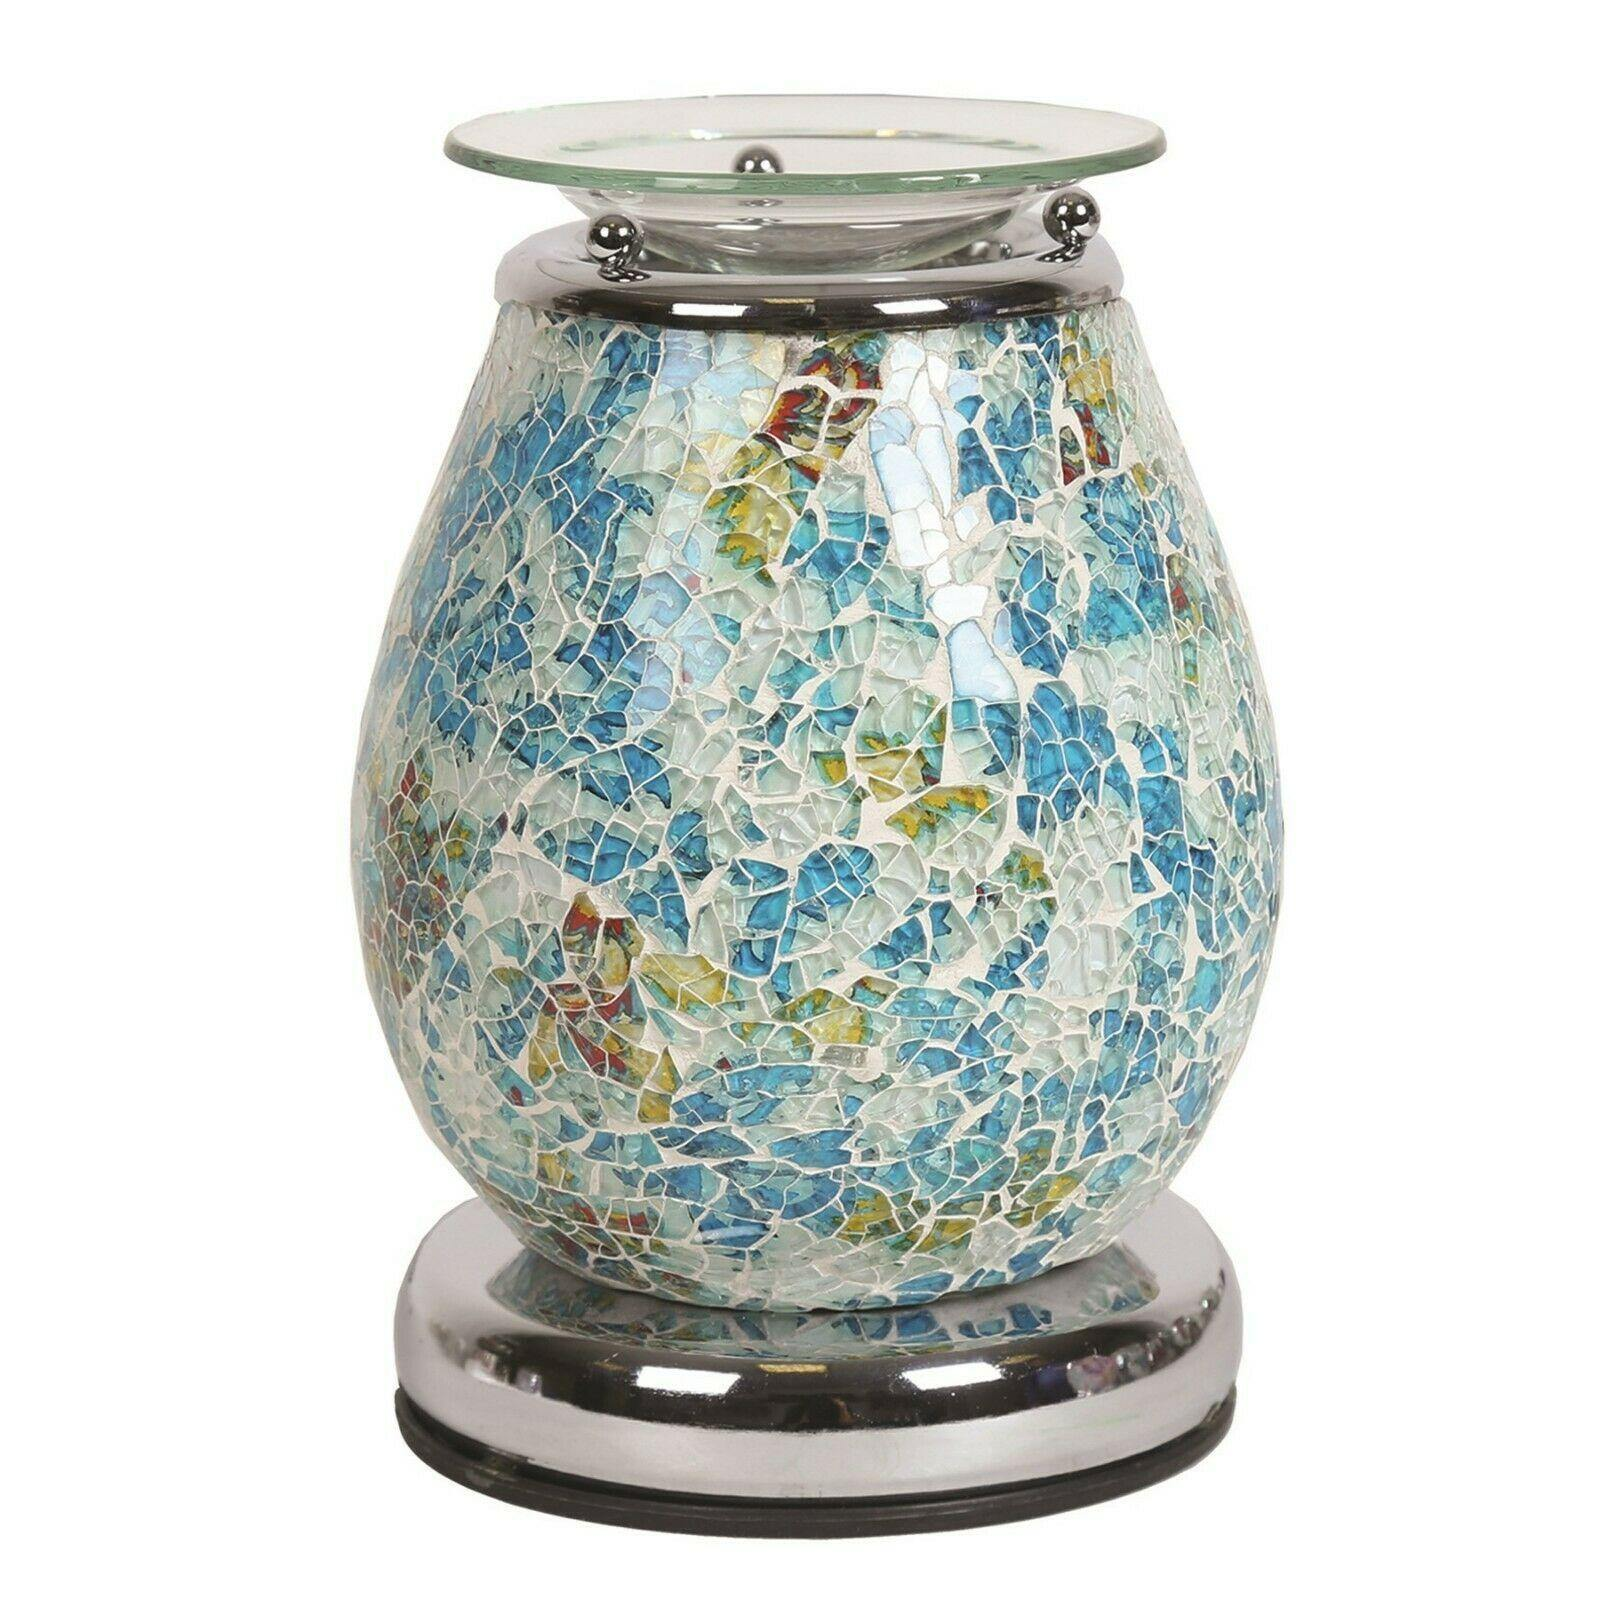 Aroma Accessories Venus Mosaic Touch Electric Wax Melt Warmer - TOSYS Candles and Gifts